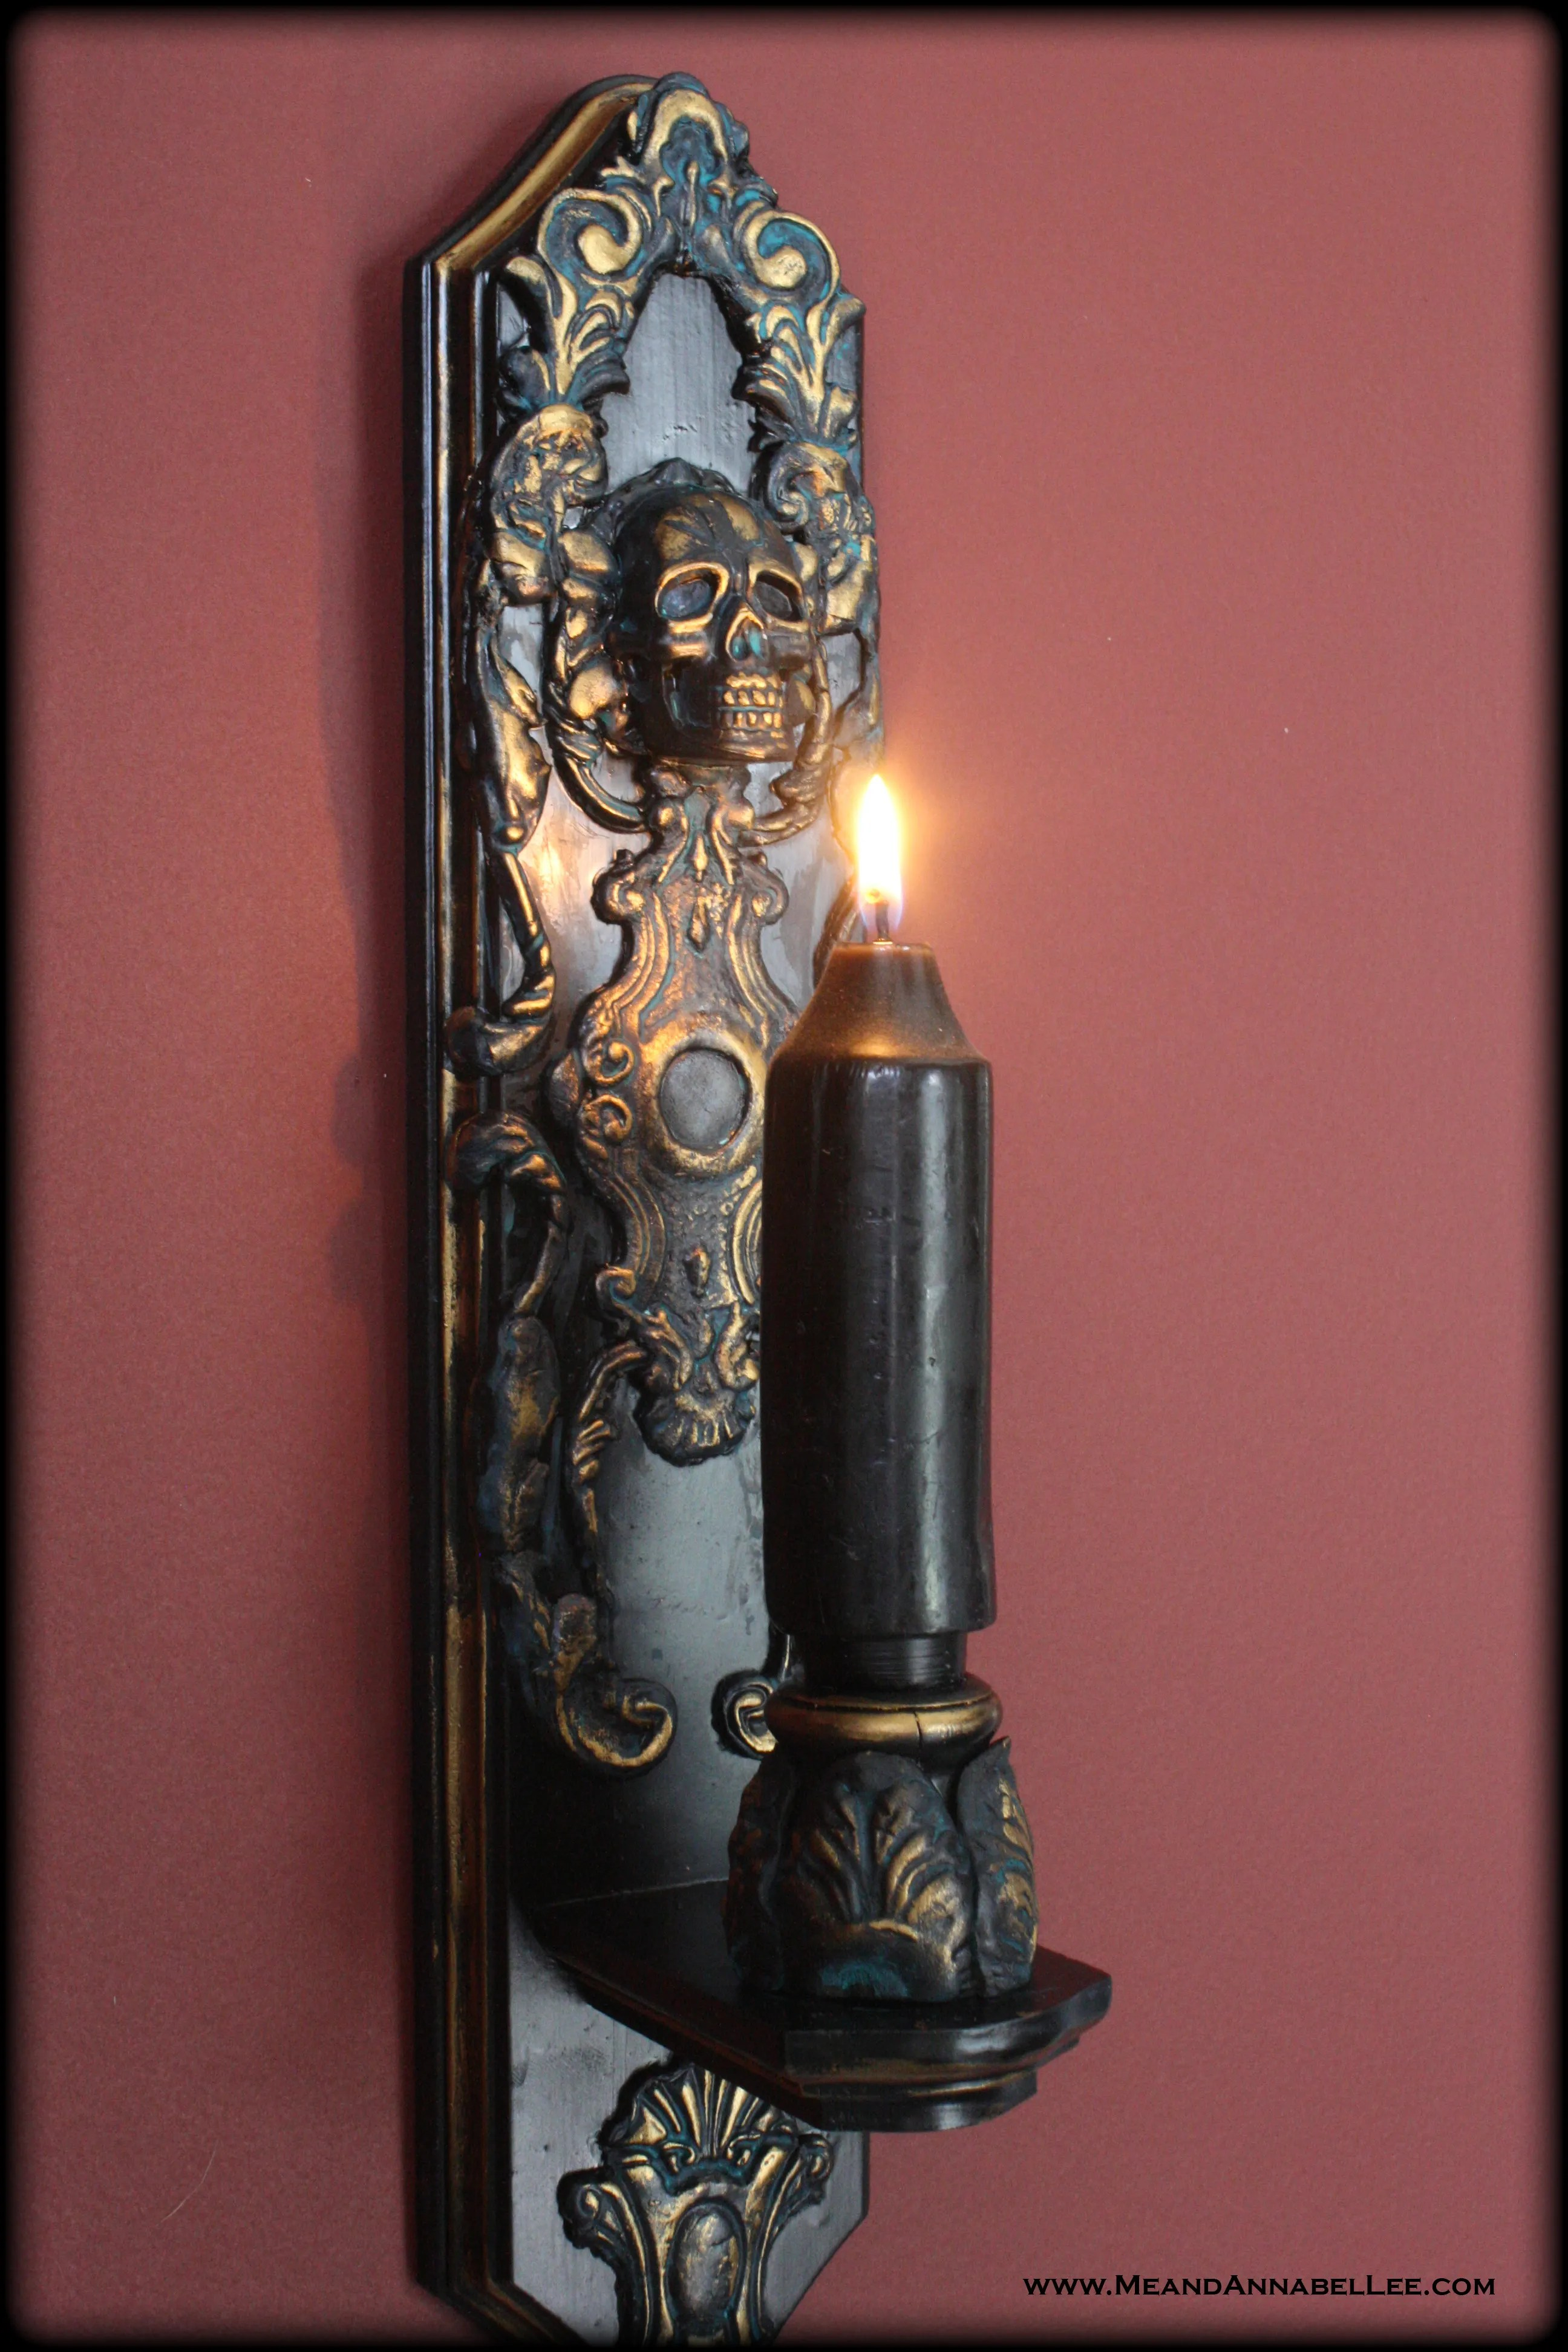 DIY Gothic Baroque Skull Candle Sconces | Me and Annabel Lee